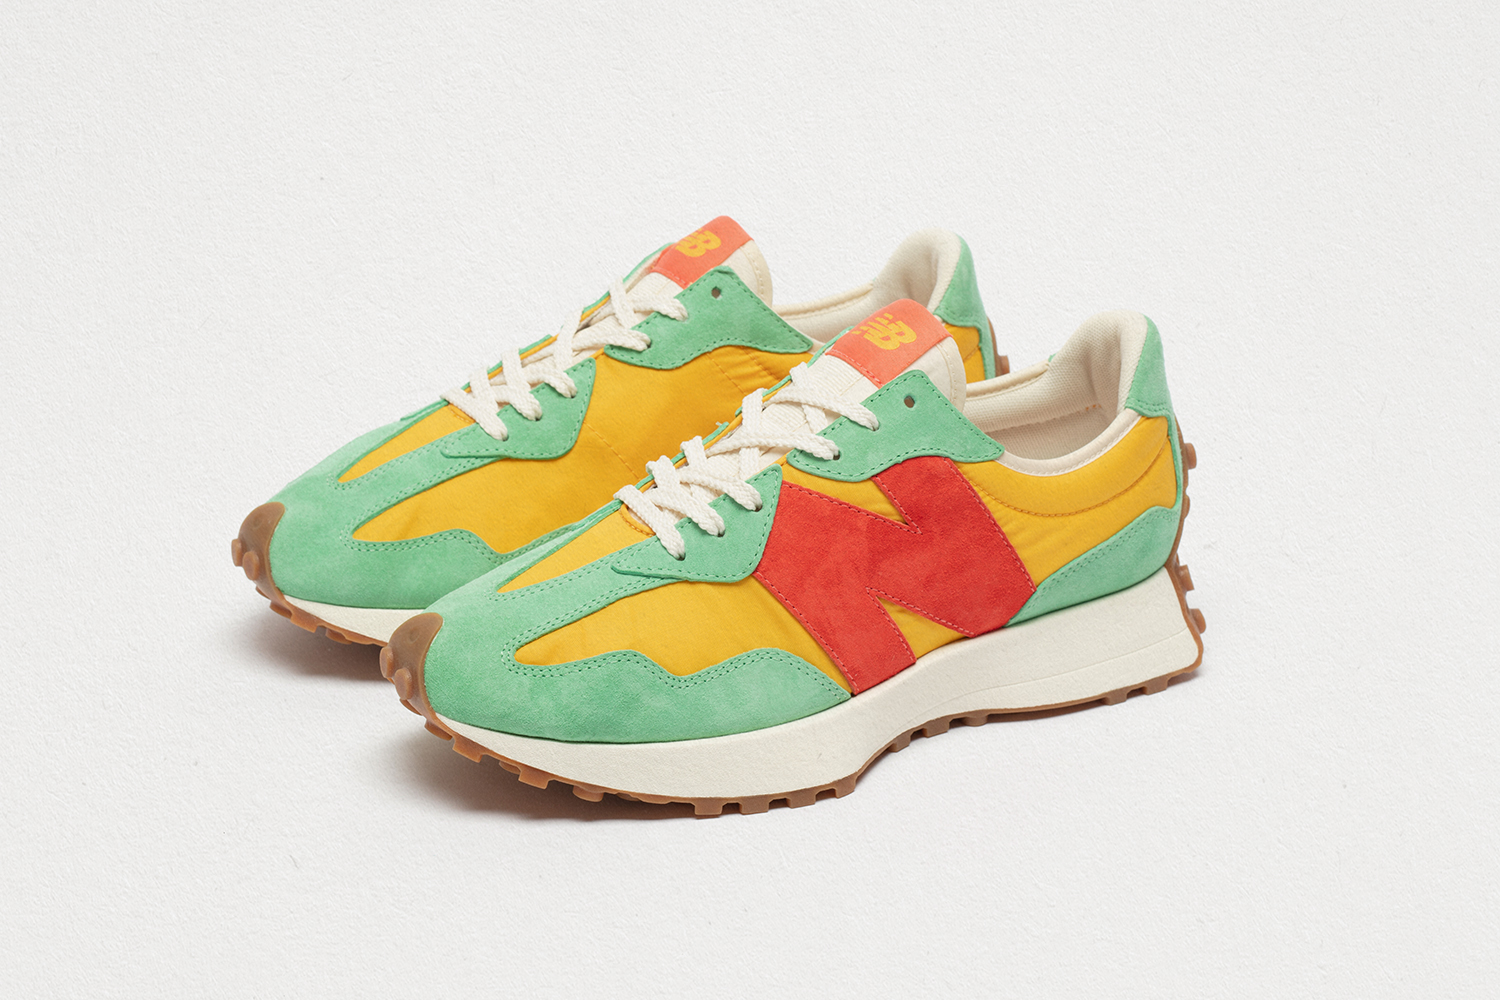 New Balance 327 yellow/green/orange  - size? exclusive